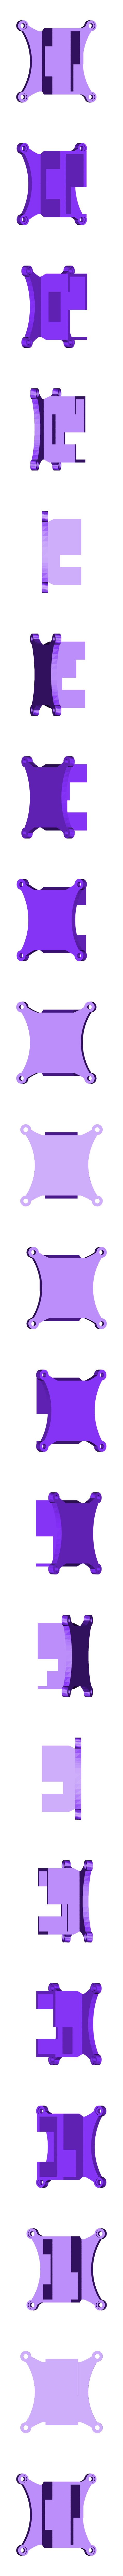 Tiny_whoop_croix__68mm_capot_camera.stl Download free STL file Tiny Whoop 68mm polycarbonate cross fashion • 3D printer design, Microdure